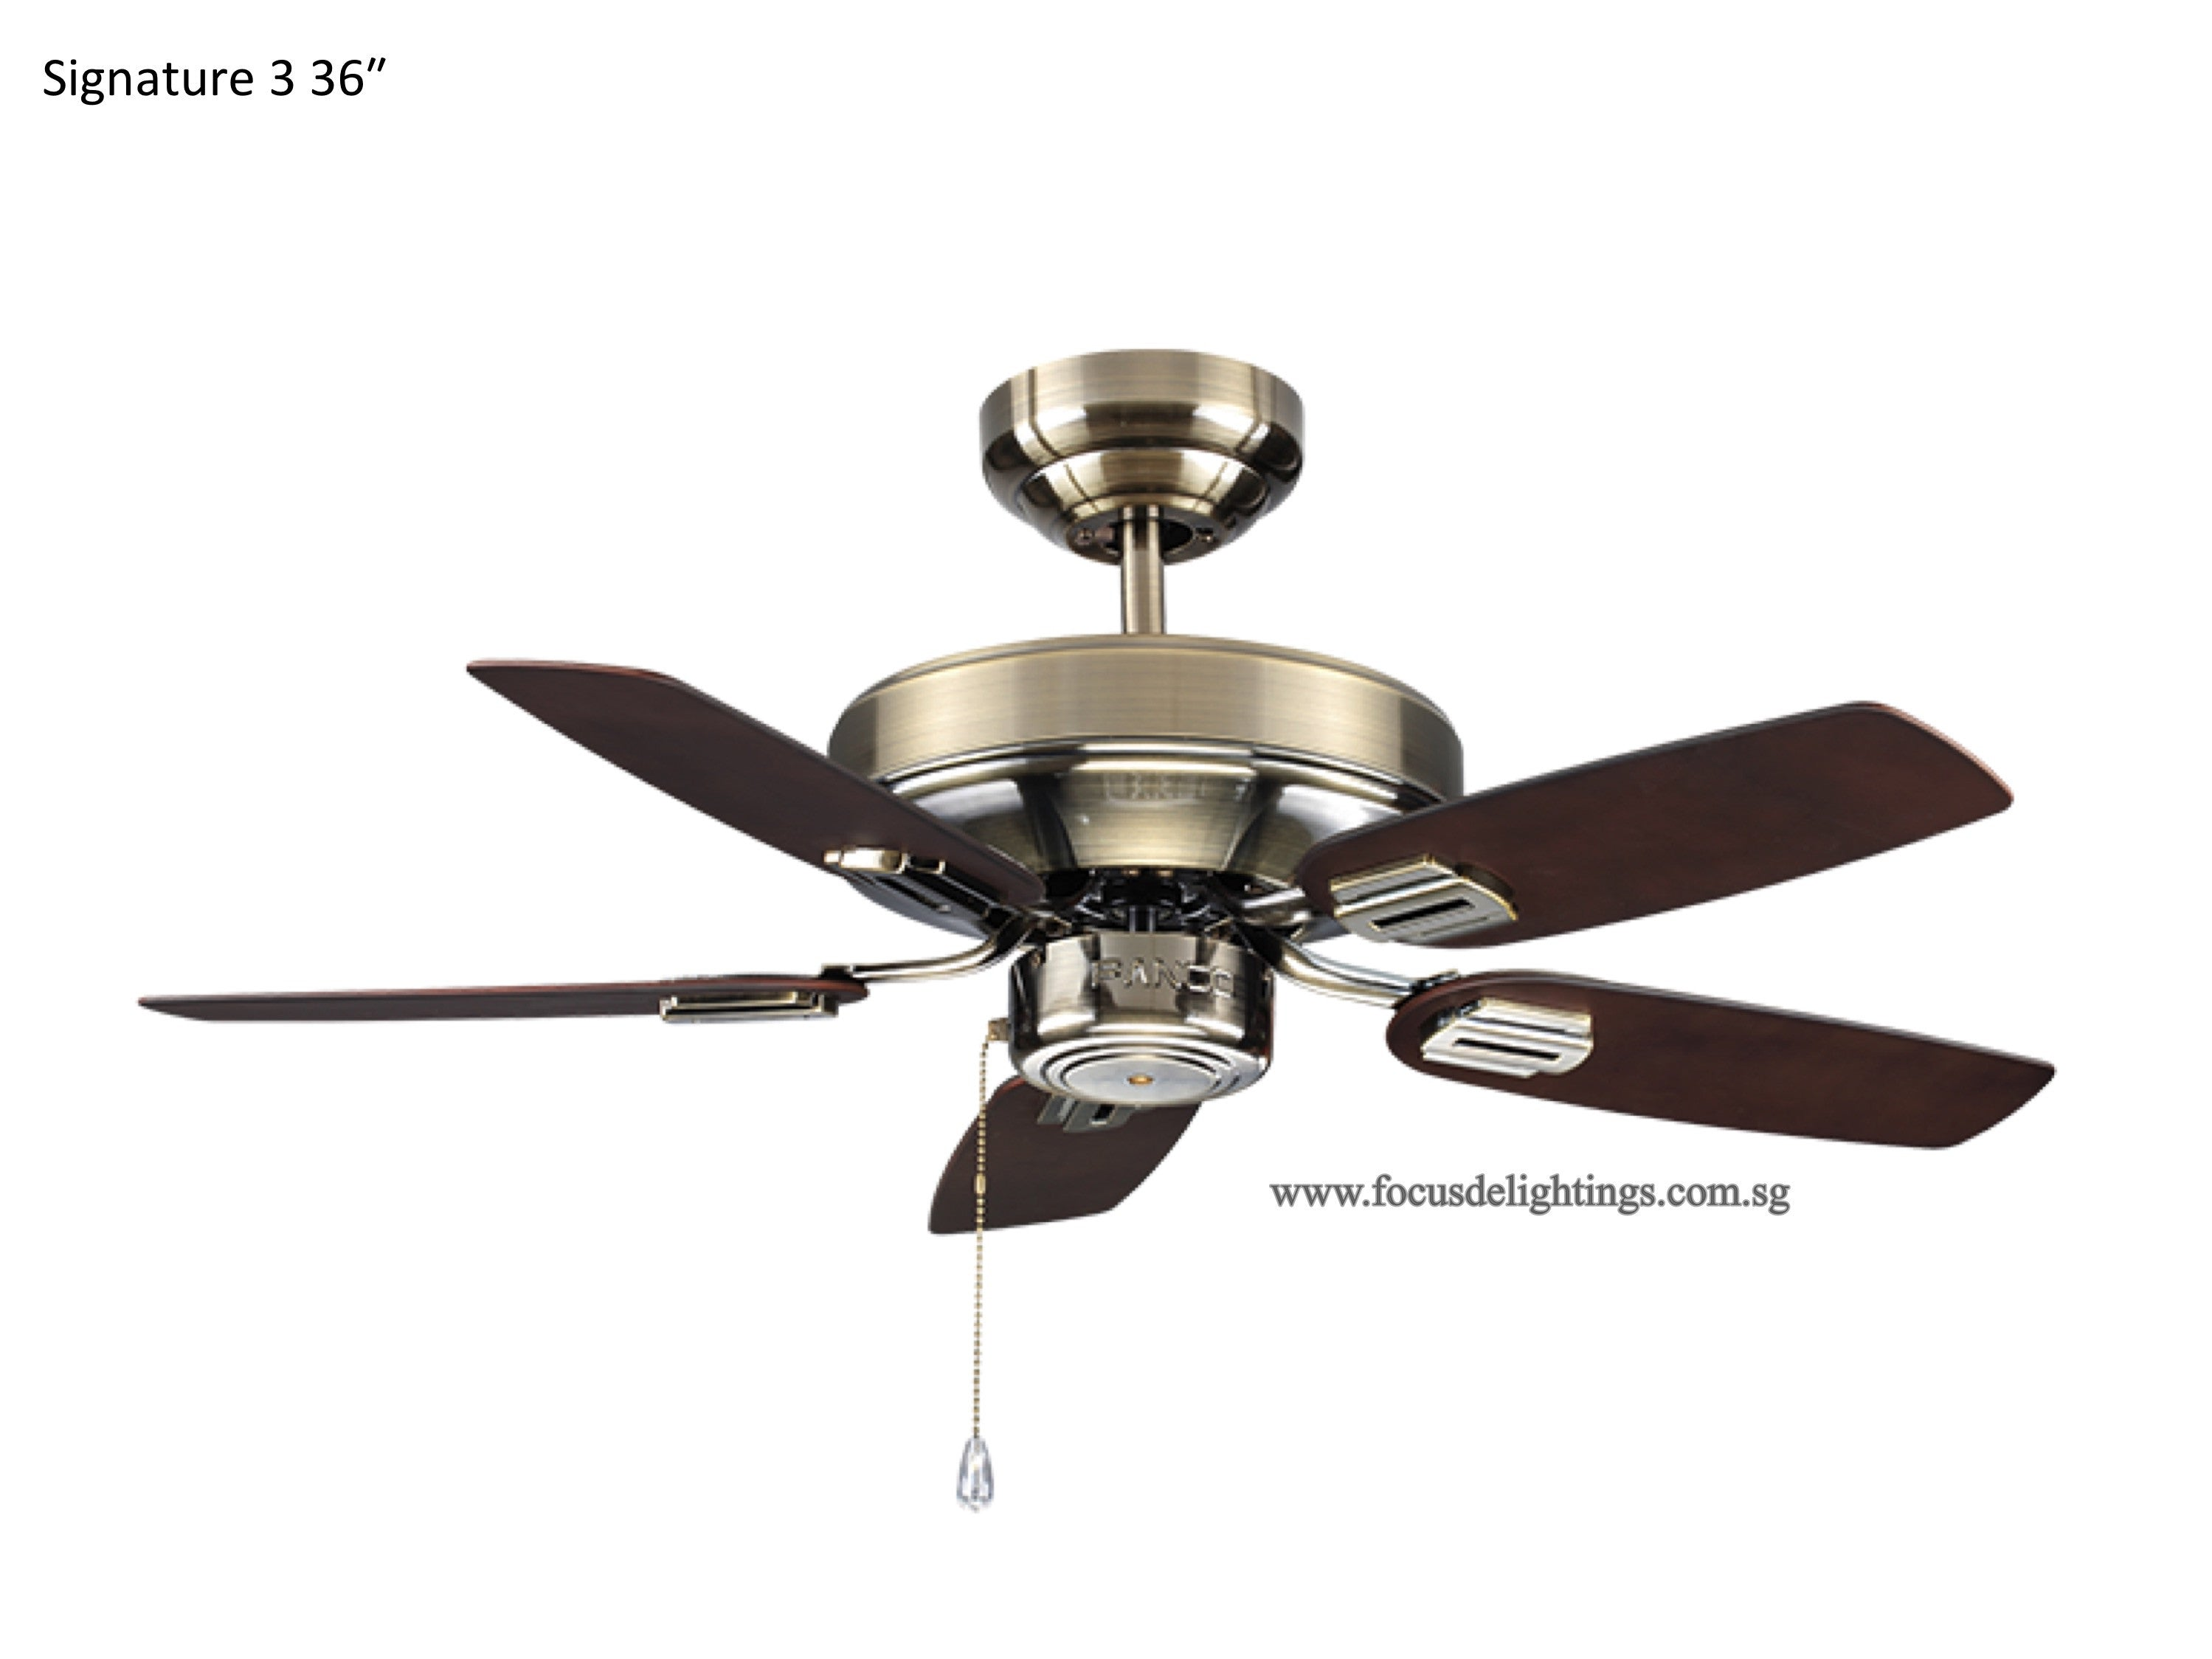 Fanco signature 3 36 ceiling fan focus de lightings fanco signature 3 36 ceiling fan aloadofball Image collections